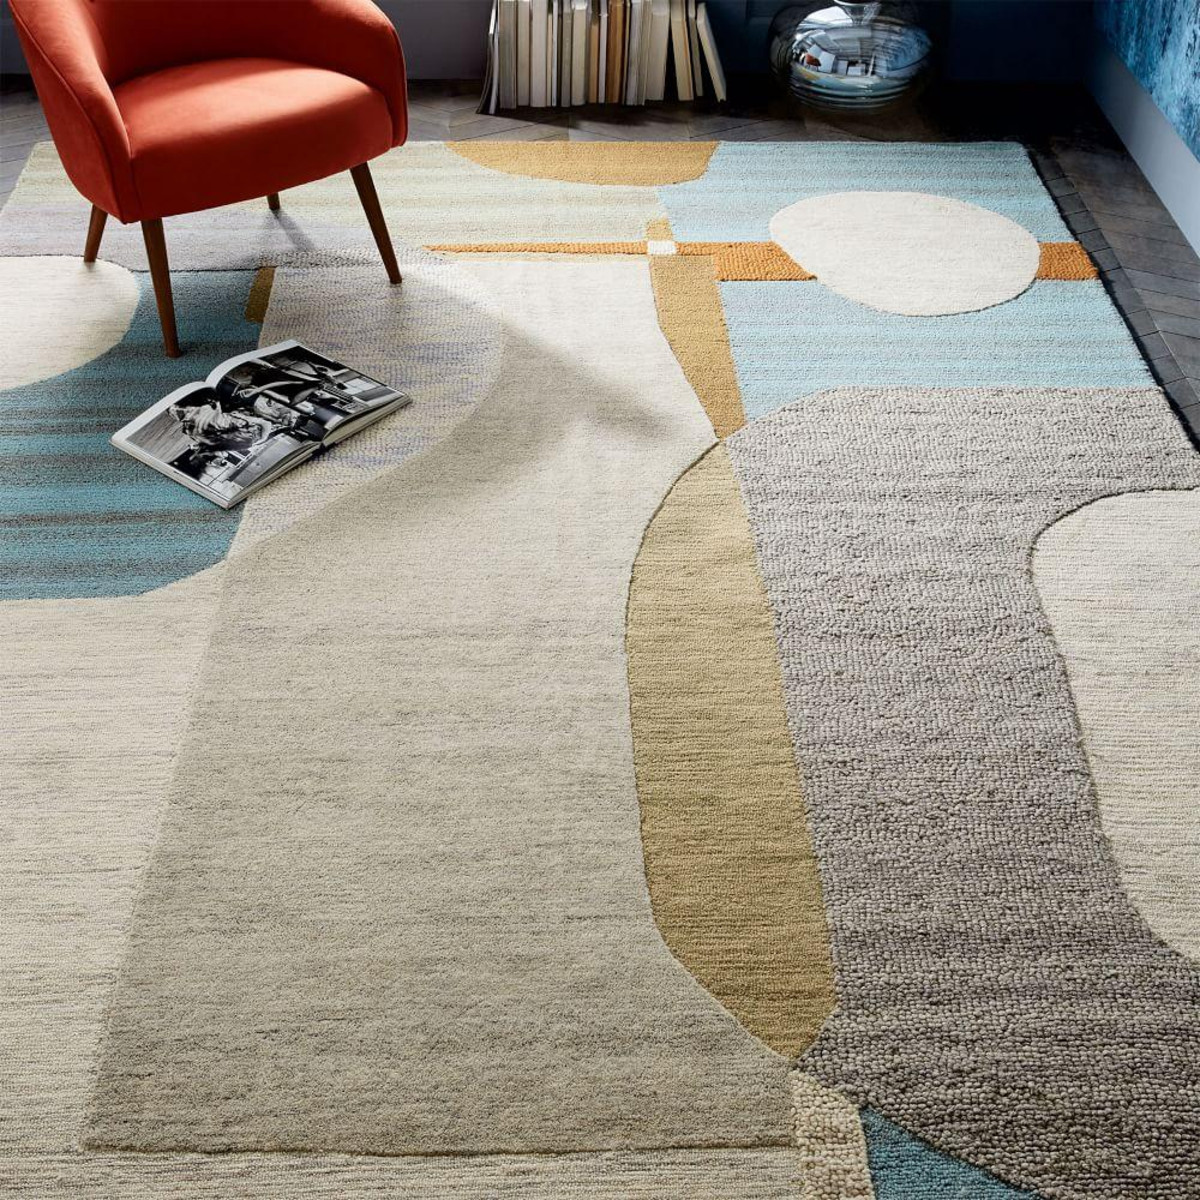 French For Pineapple Blog - Life After Beni - The Coolest Abstract Geometric Rugs In Town